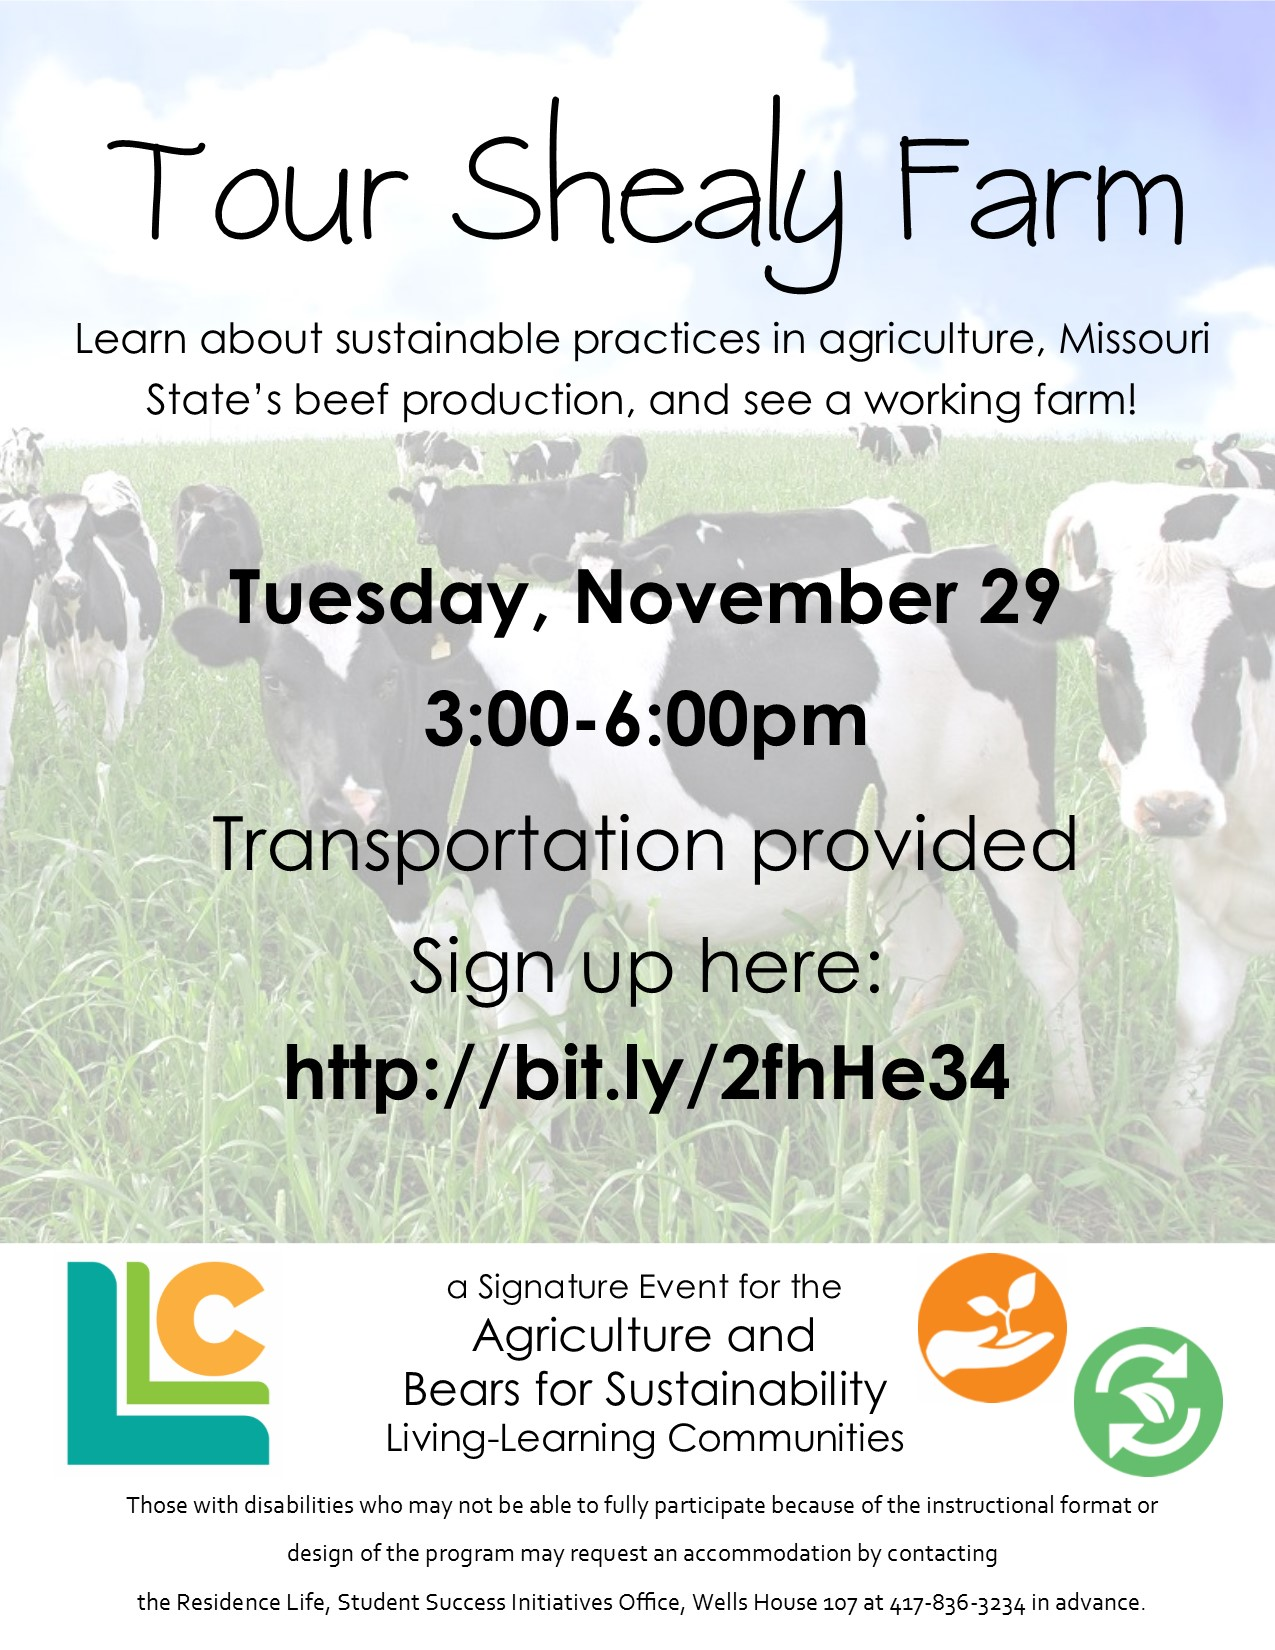 Agriculture and Bears for Sustainability: Tour Shealy Farm